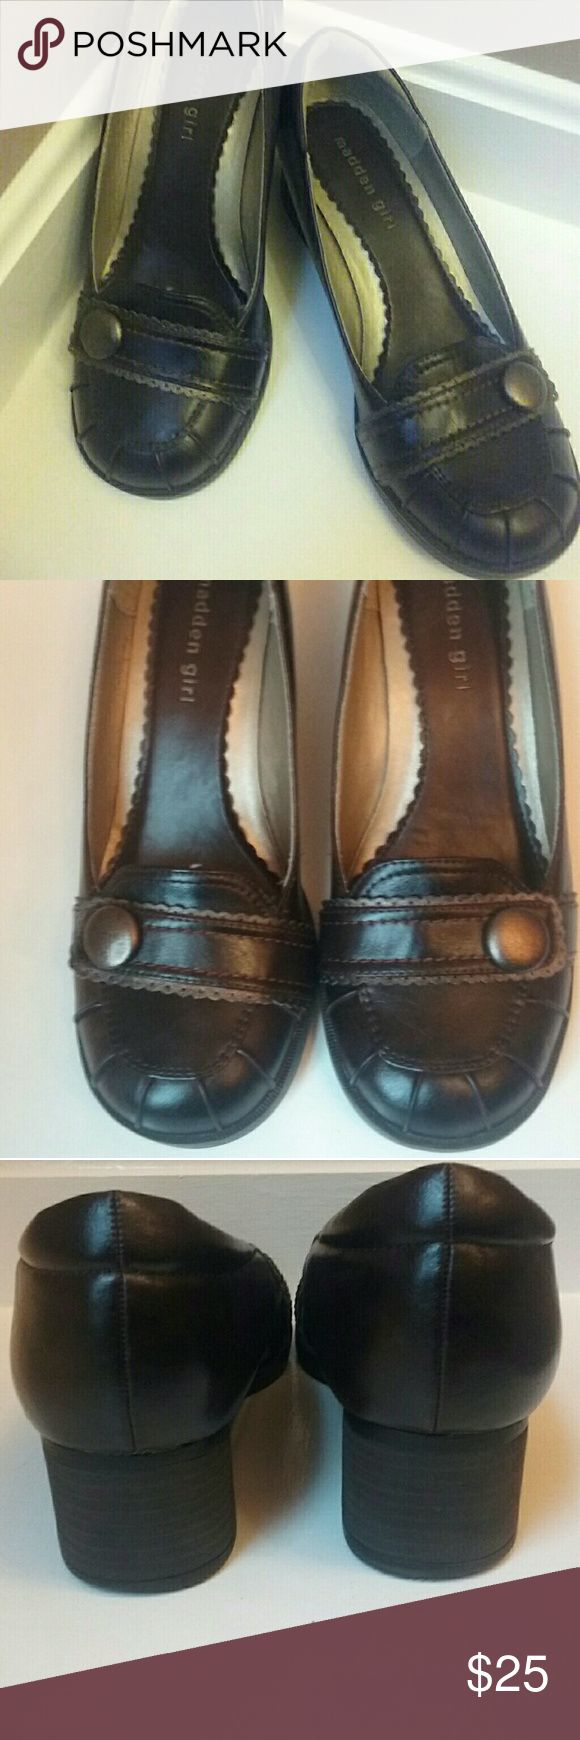 CHOCOLATE BROWN MADDEN LOAFERS CHOCOLATE BROWN MADDEN GIRL LOAFERS BY STEVE MADDEN! LIKE NEW -EXCELLENT CONDITION! WORN TWICE BEFORE OUTGROWING SIZE!   ☆BUNDLE AND SAVE MORE!☆ Steve Madden Shoes Flats & Loafers